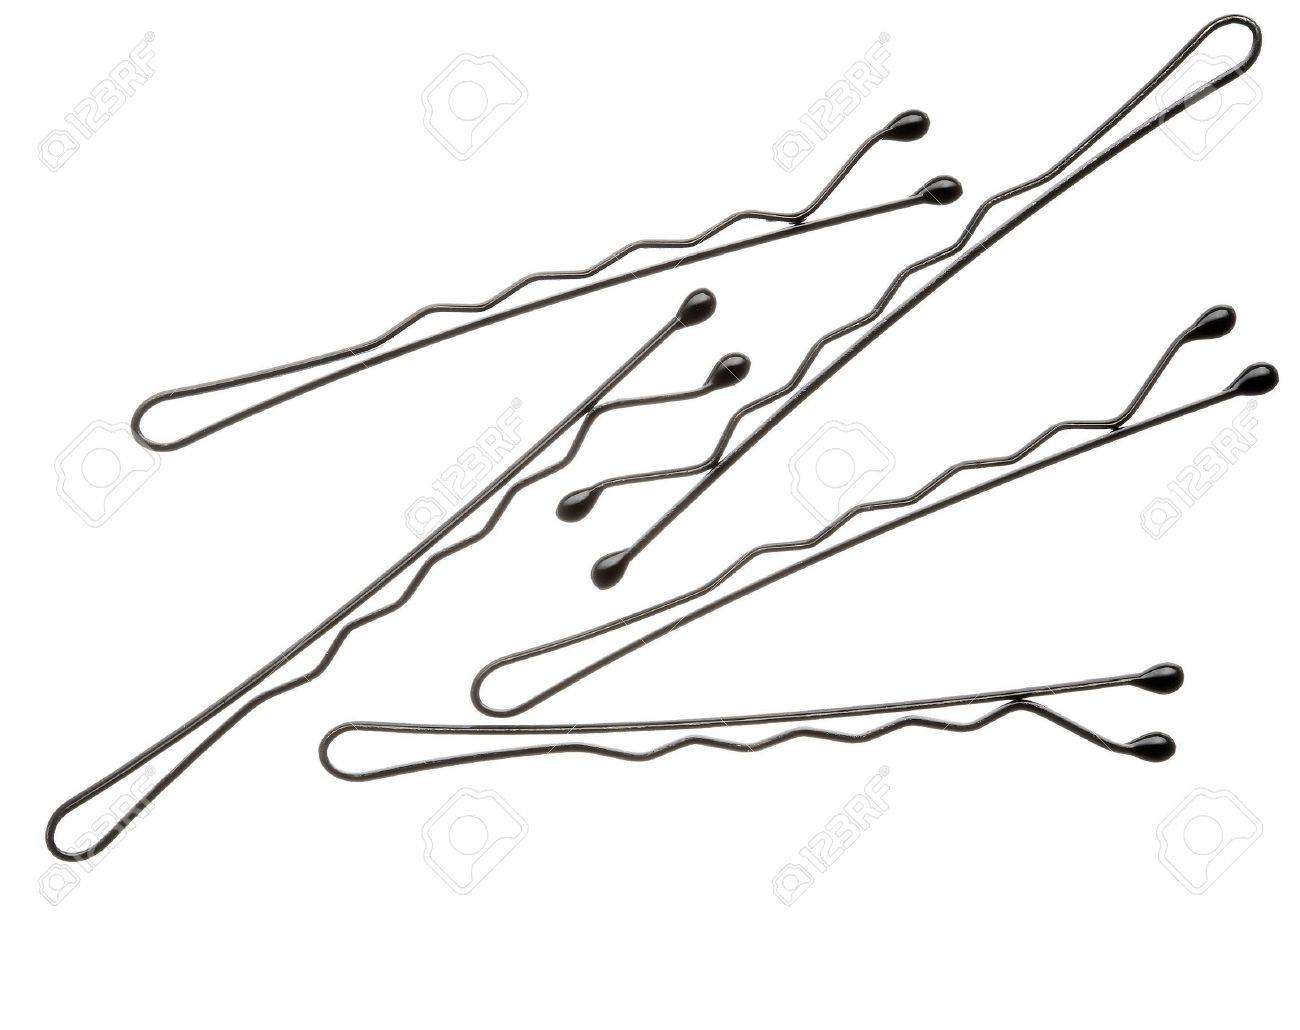 Bobby pin clipart 6 » Clipart Station.